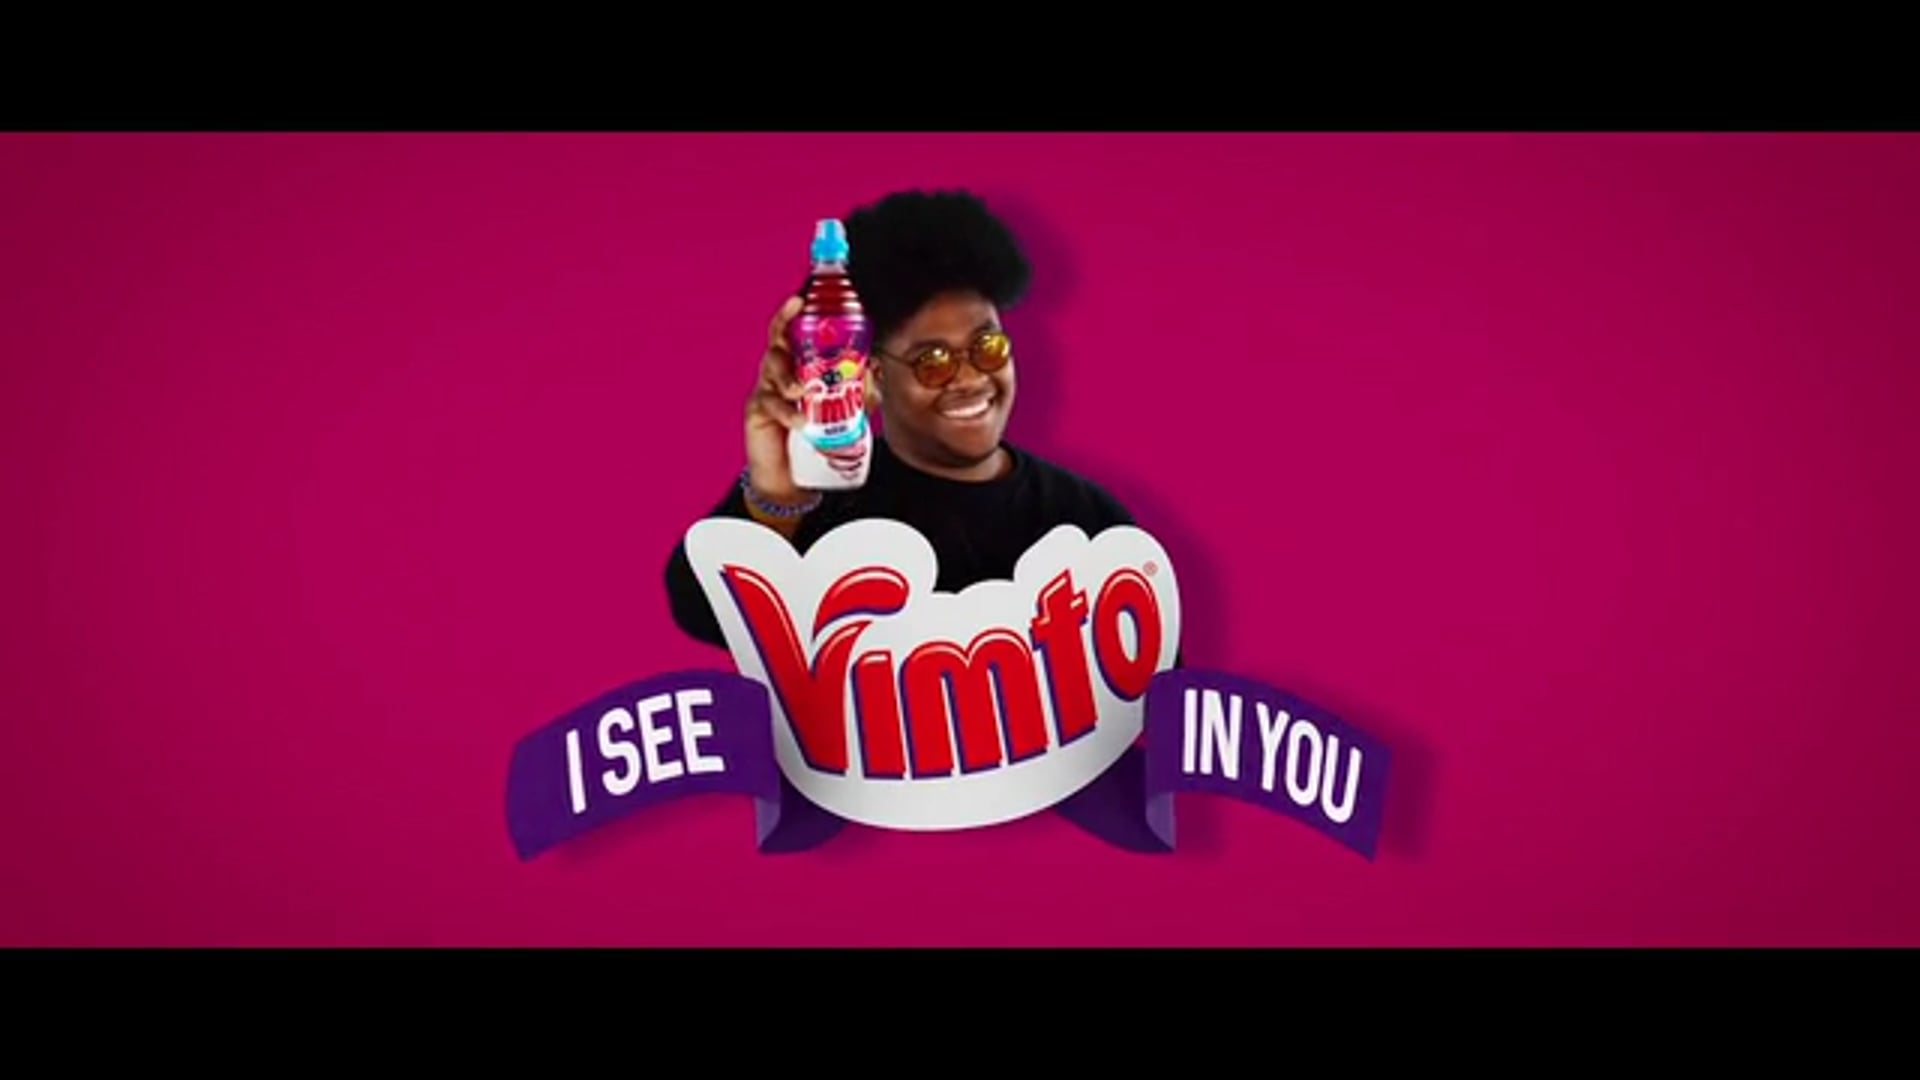 I SEE VIMTO IN YOU \\ UK TV Advertising